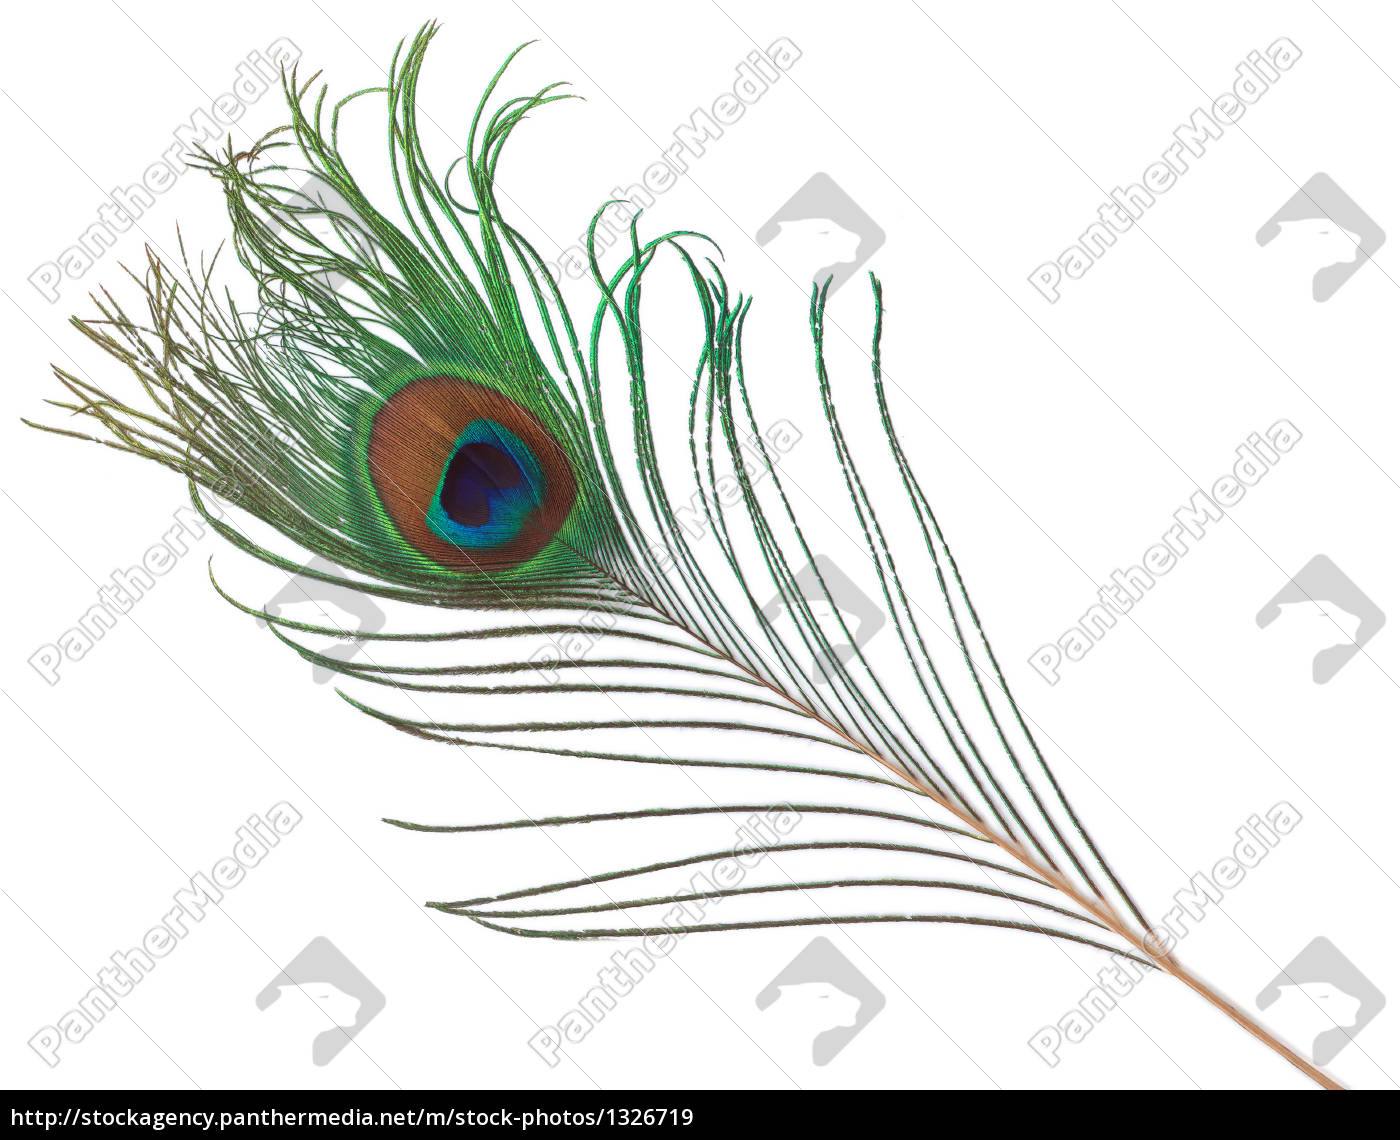 peacock, feather - 1326719